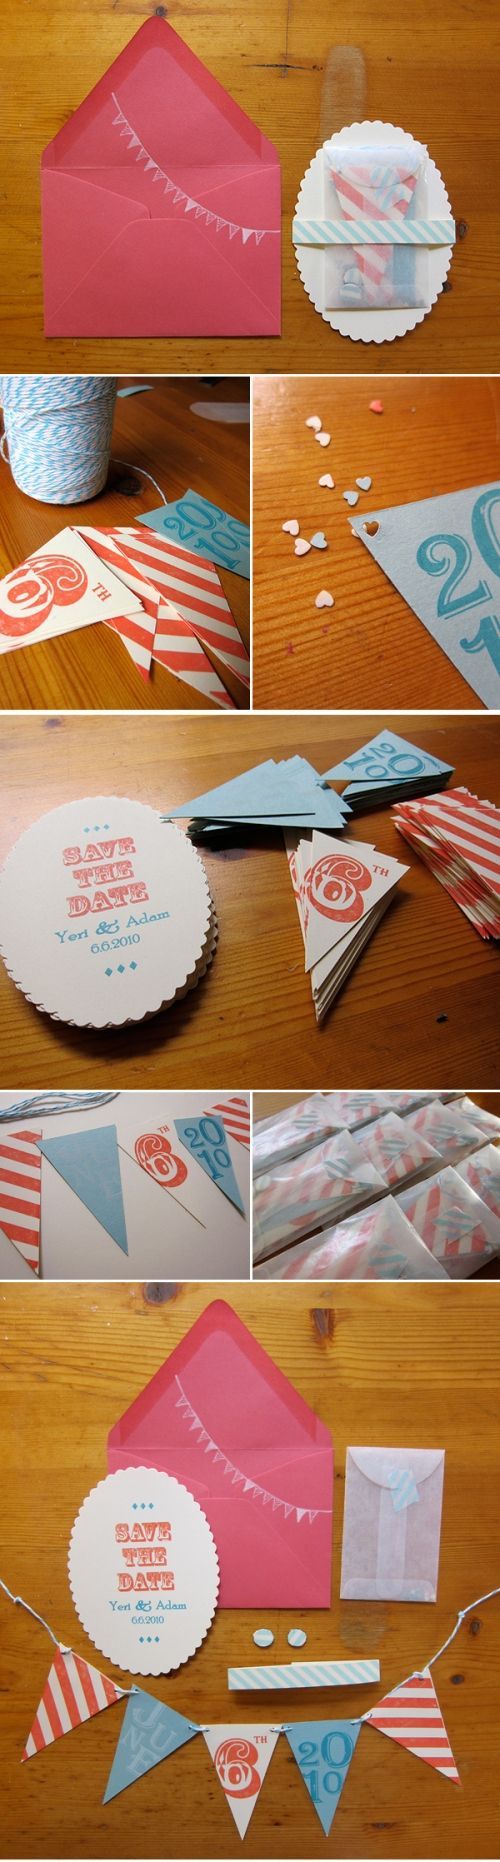 DIY make your own flags Save The Date. How fun!